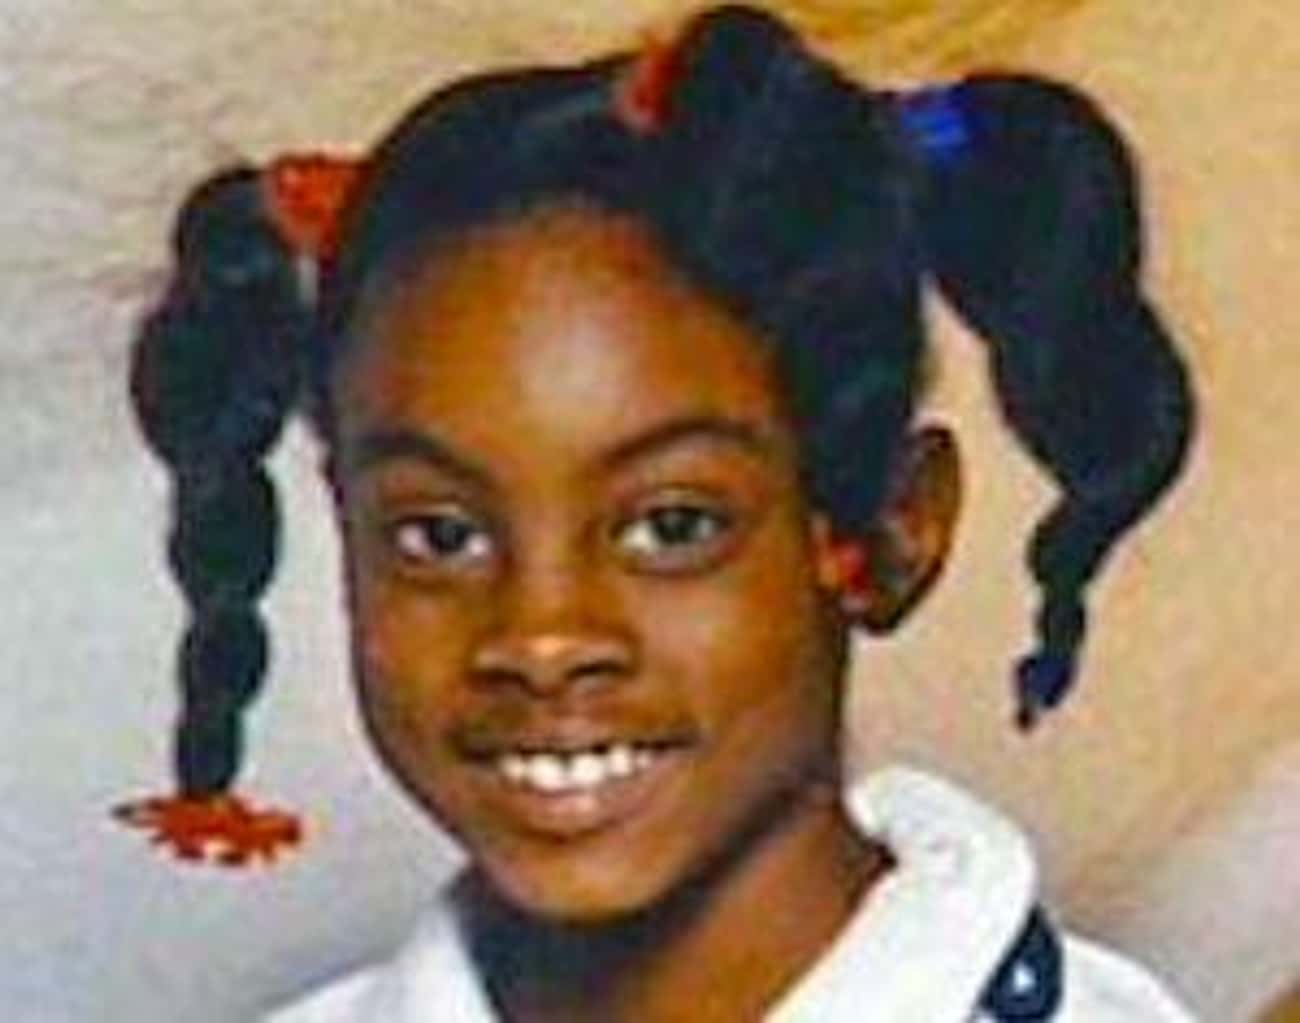 On Valentine's Day 2000, 9-Year-Old Asha Degree Disappeared From Her Shelby, NC, Home